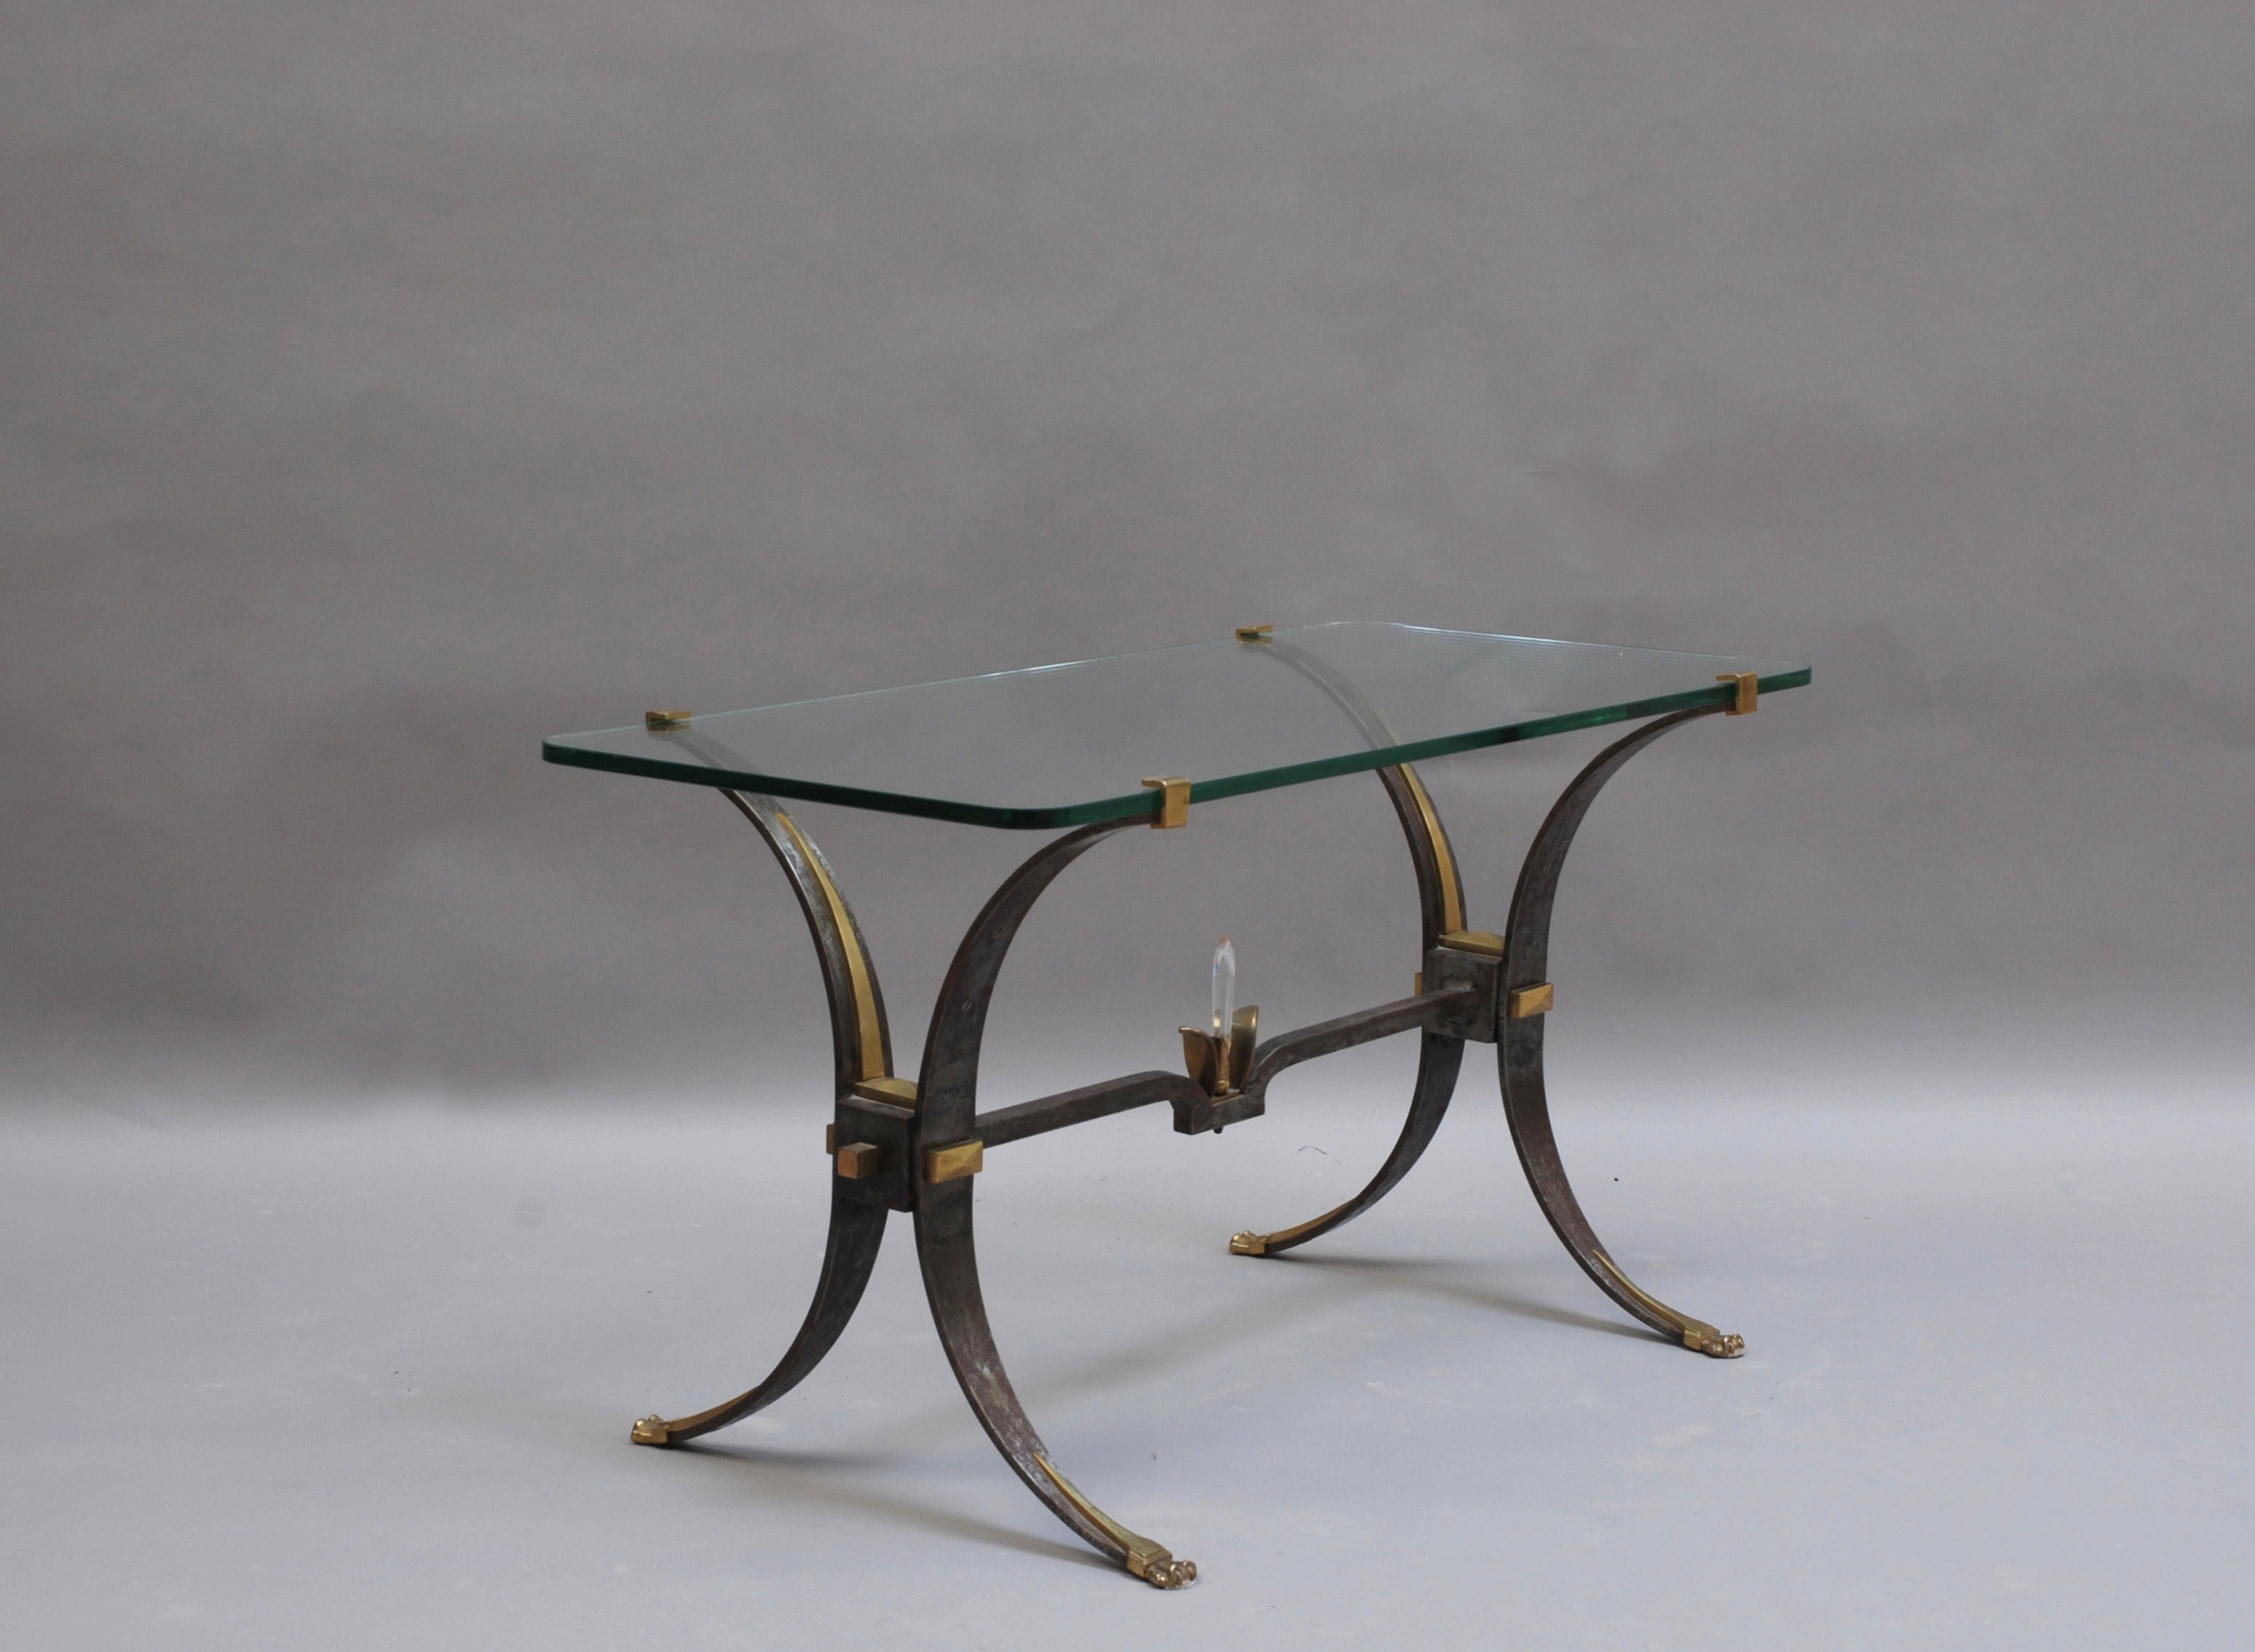 Fine French Wrought Iron and Brass Base Coffee Table with a Glass Top